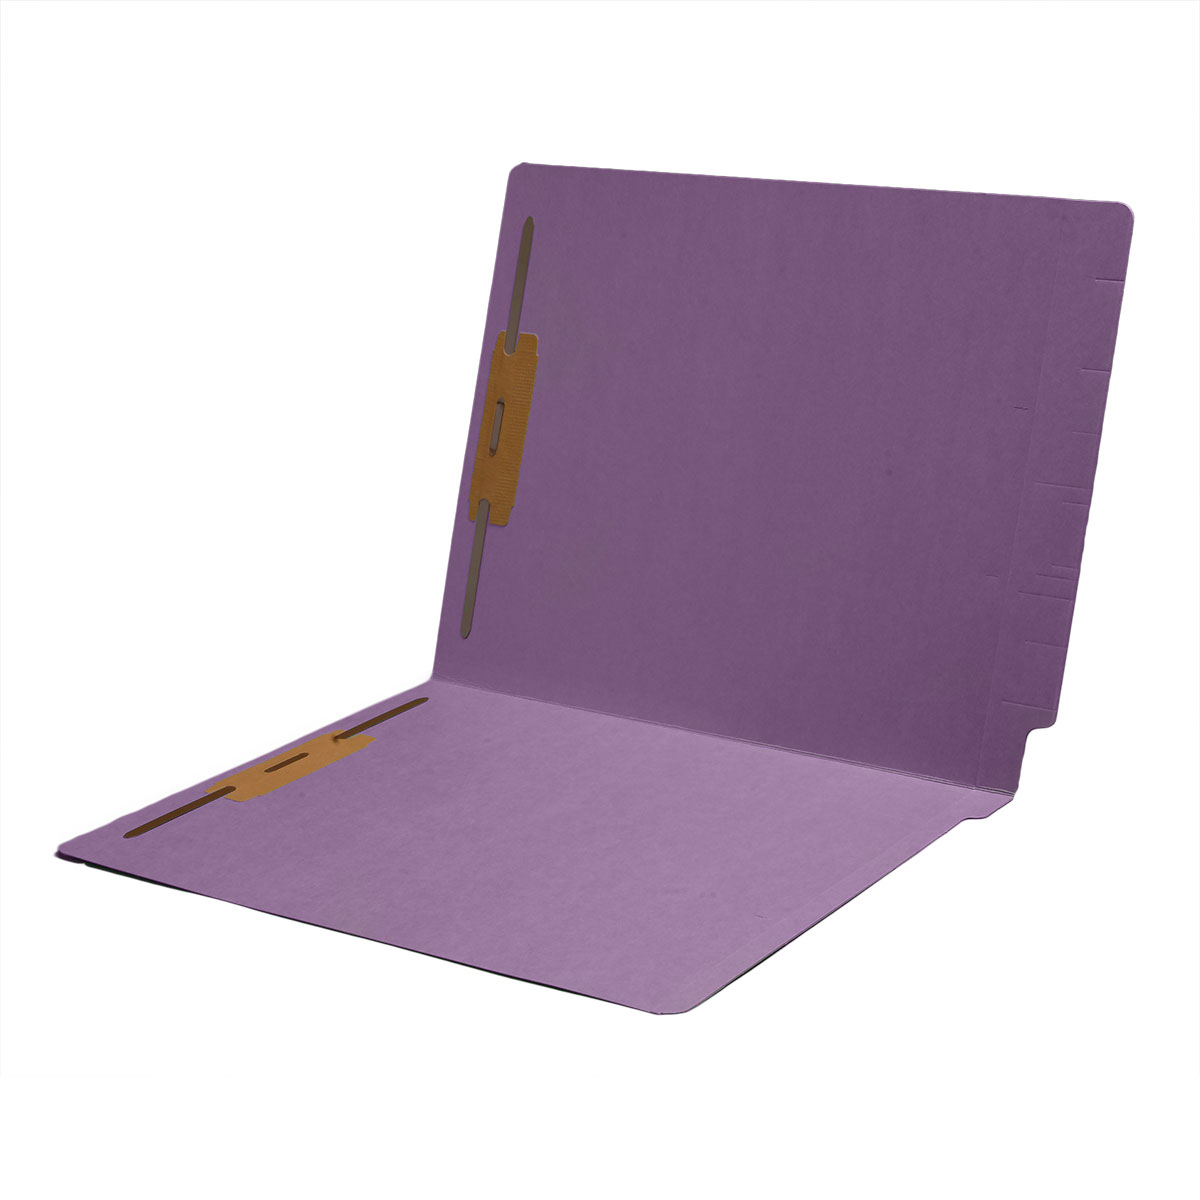 S-1502-LAV - 11 pt Color Folders, Full Cut 2-Ply End Tab, Letter Size, Fasteners Pos #1 & #3, Lavender (Box of 50)